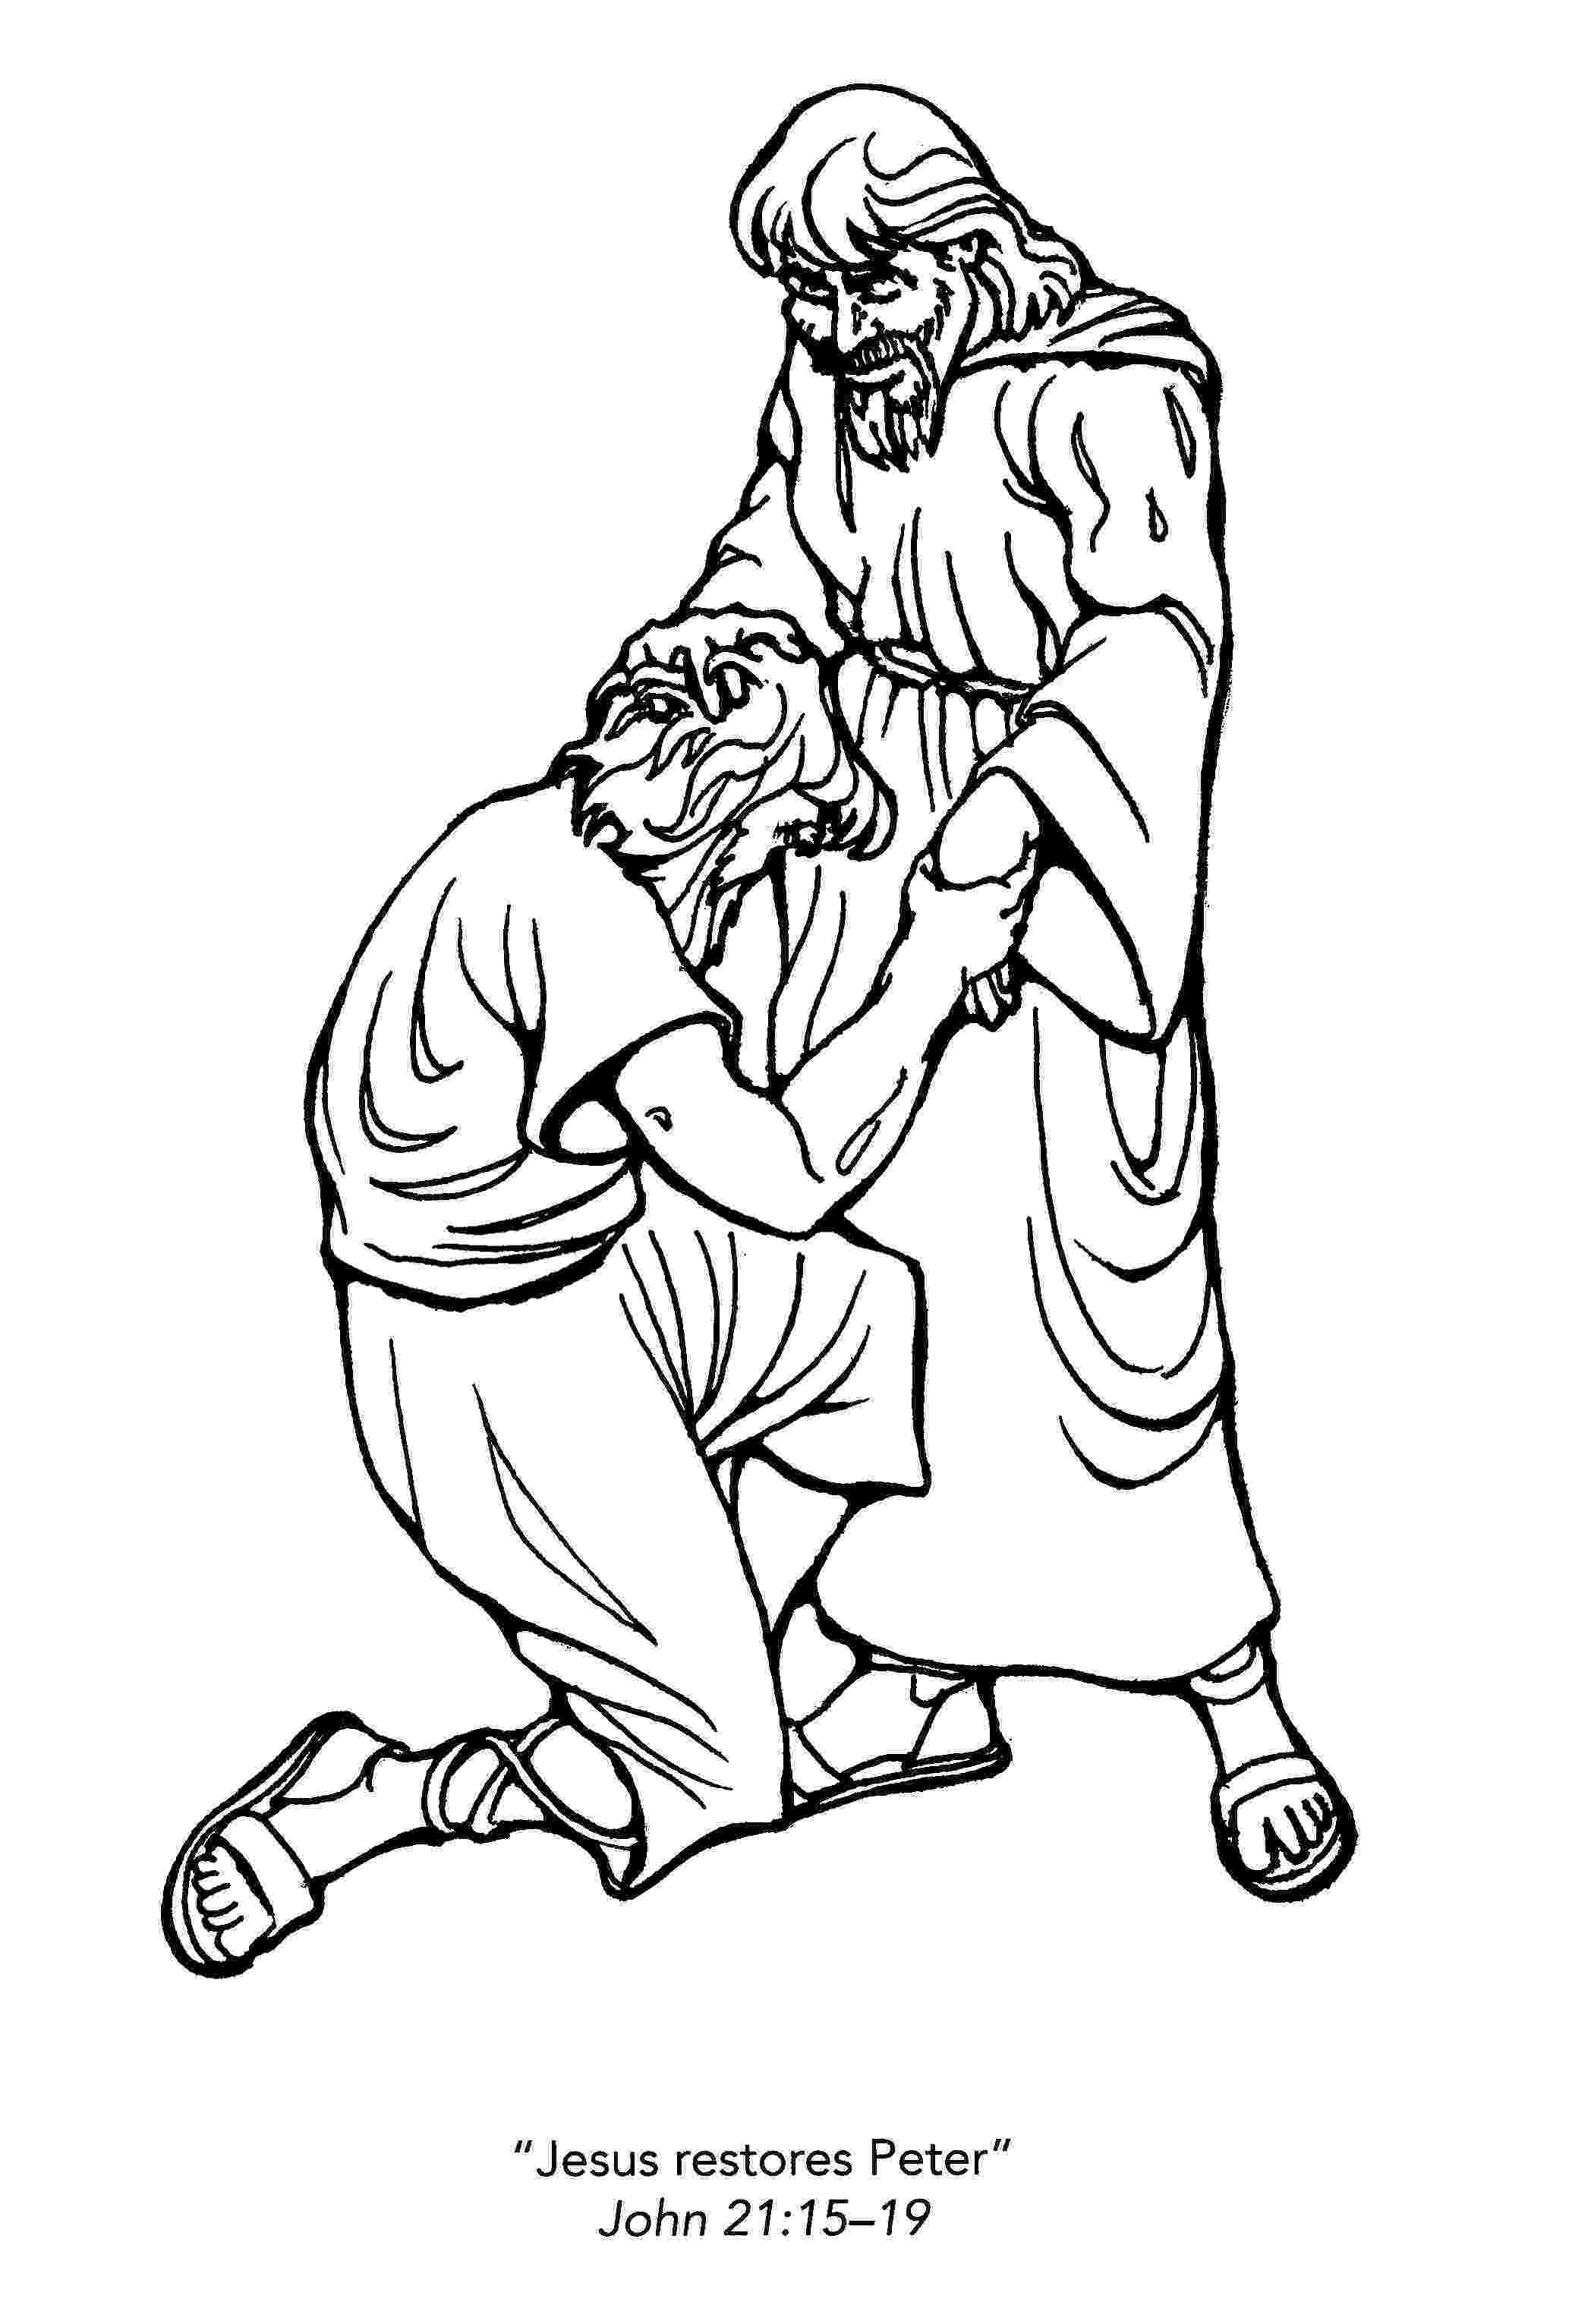 peter and andrew meet jesus coloring page peter and andrew meet jesus coloring page andrew jesus peter coloring page meet and